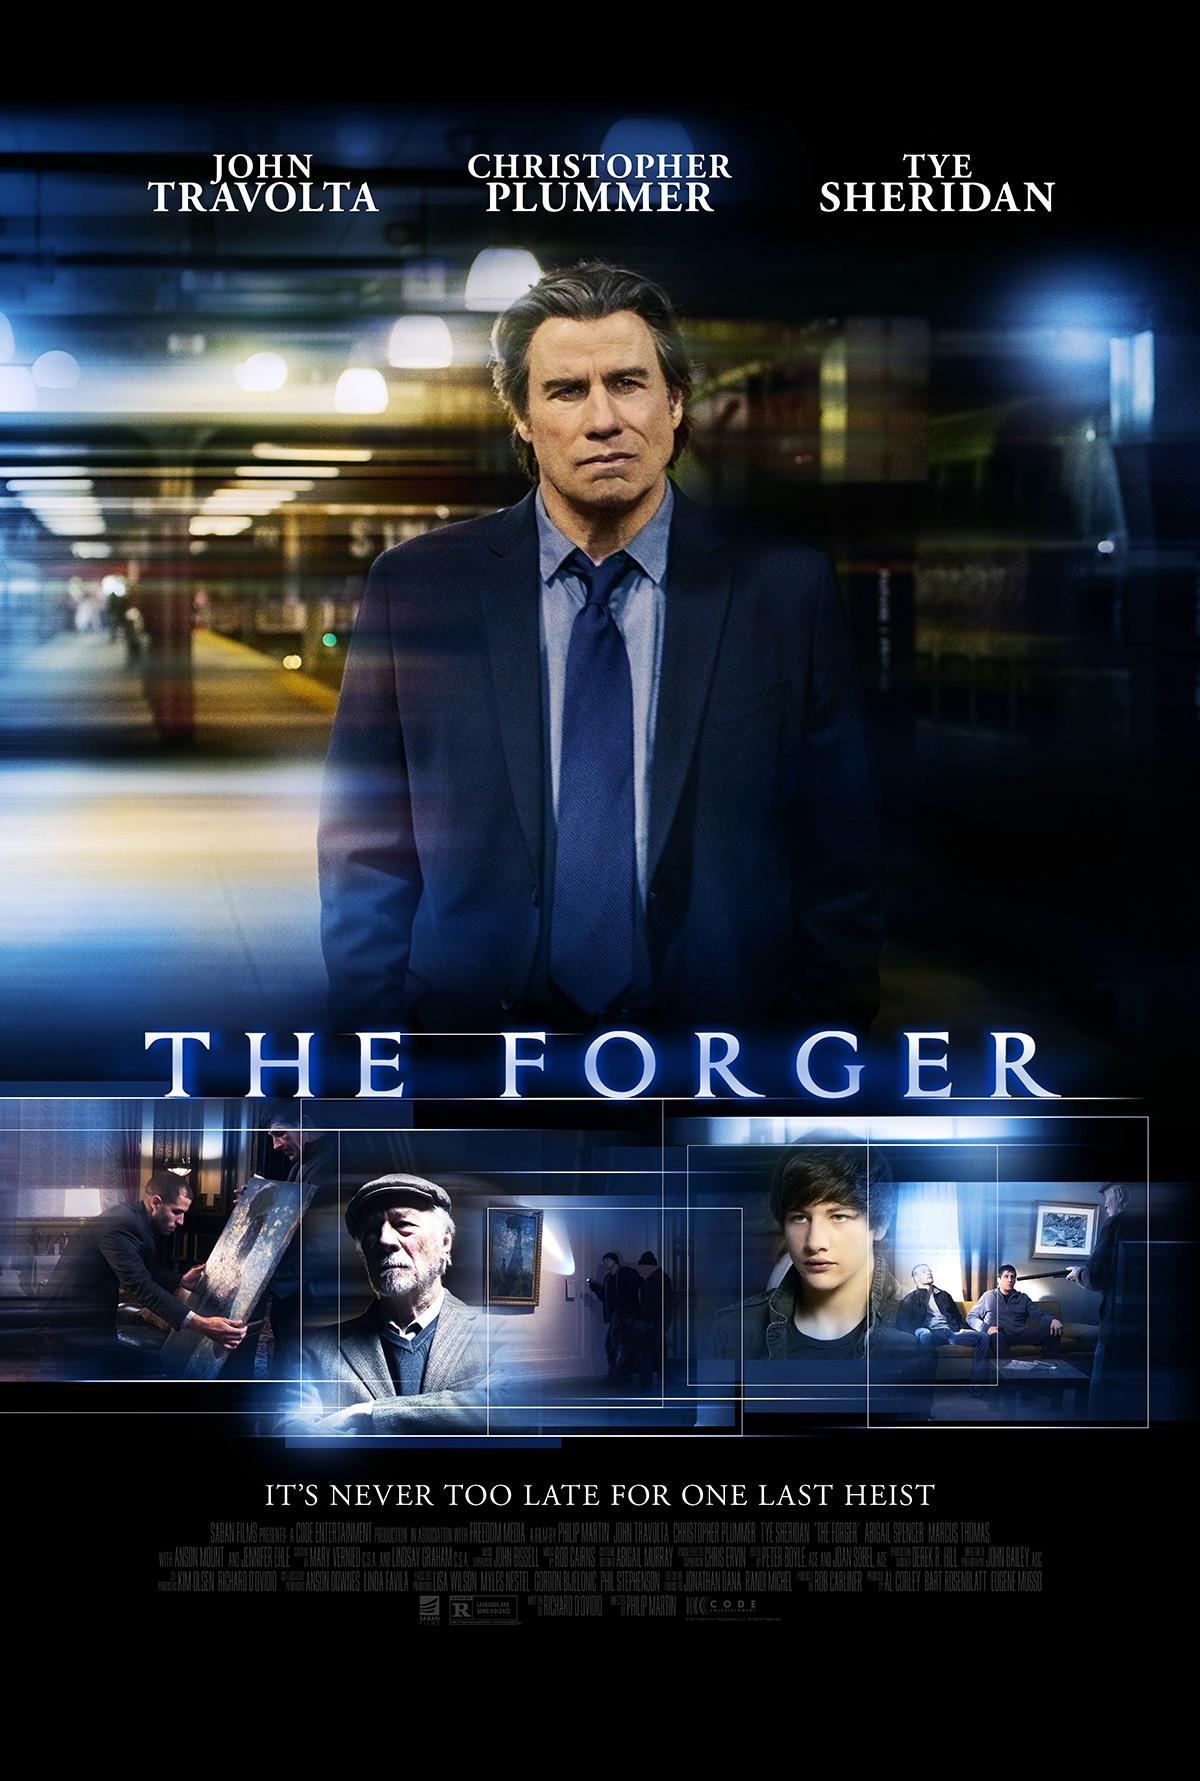 The Forger Movie Review English